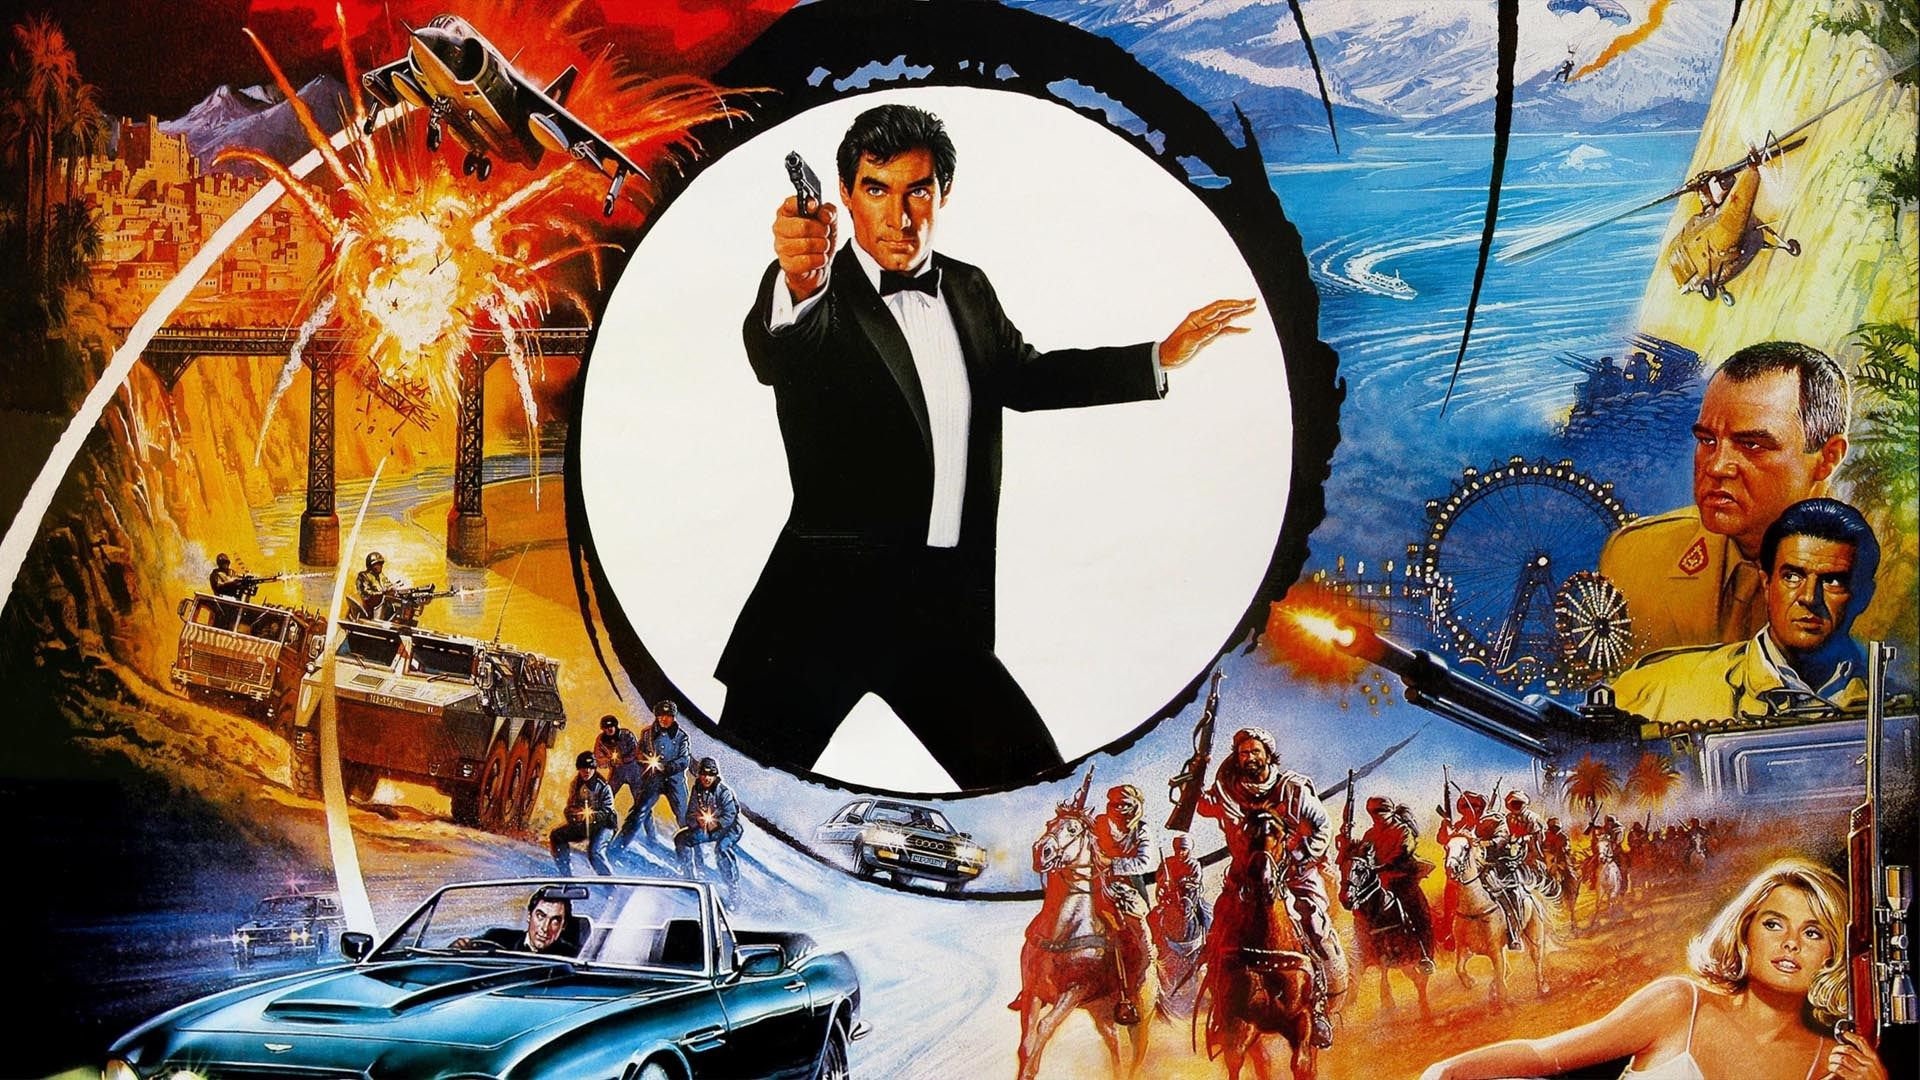 1920x1080 Wallpapers Free The Living Daylights James Bond Movie Posters James Bond Movies Bond Movies